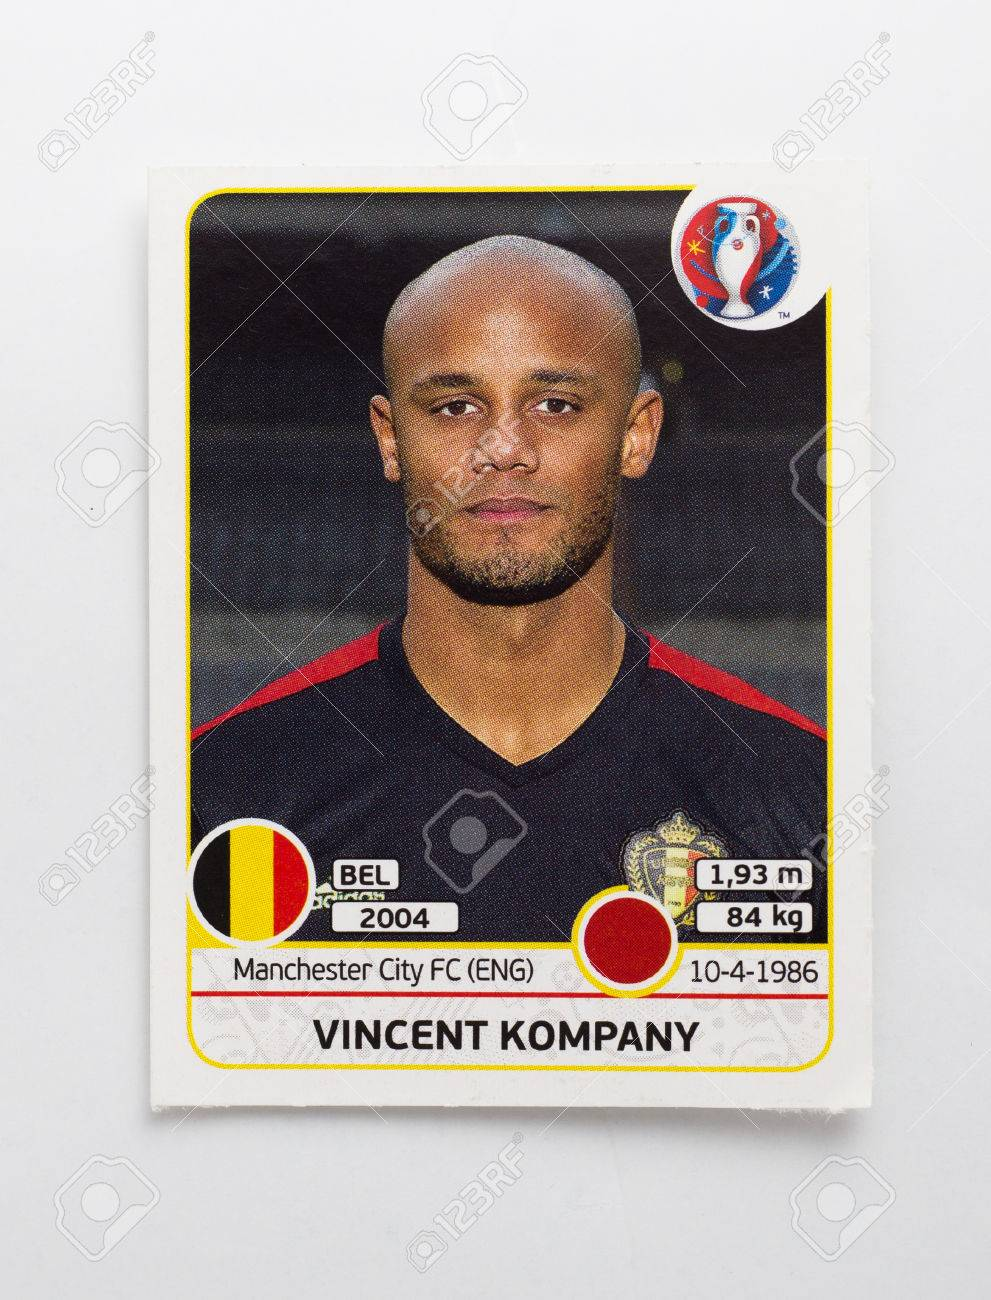 PANINI EURO CUP STICKERS 2004 1 PACK